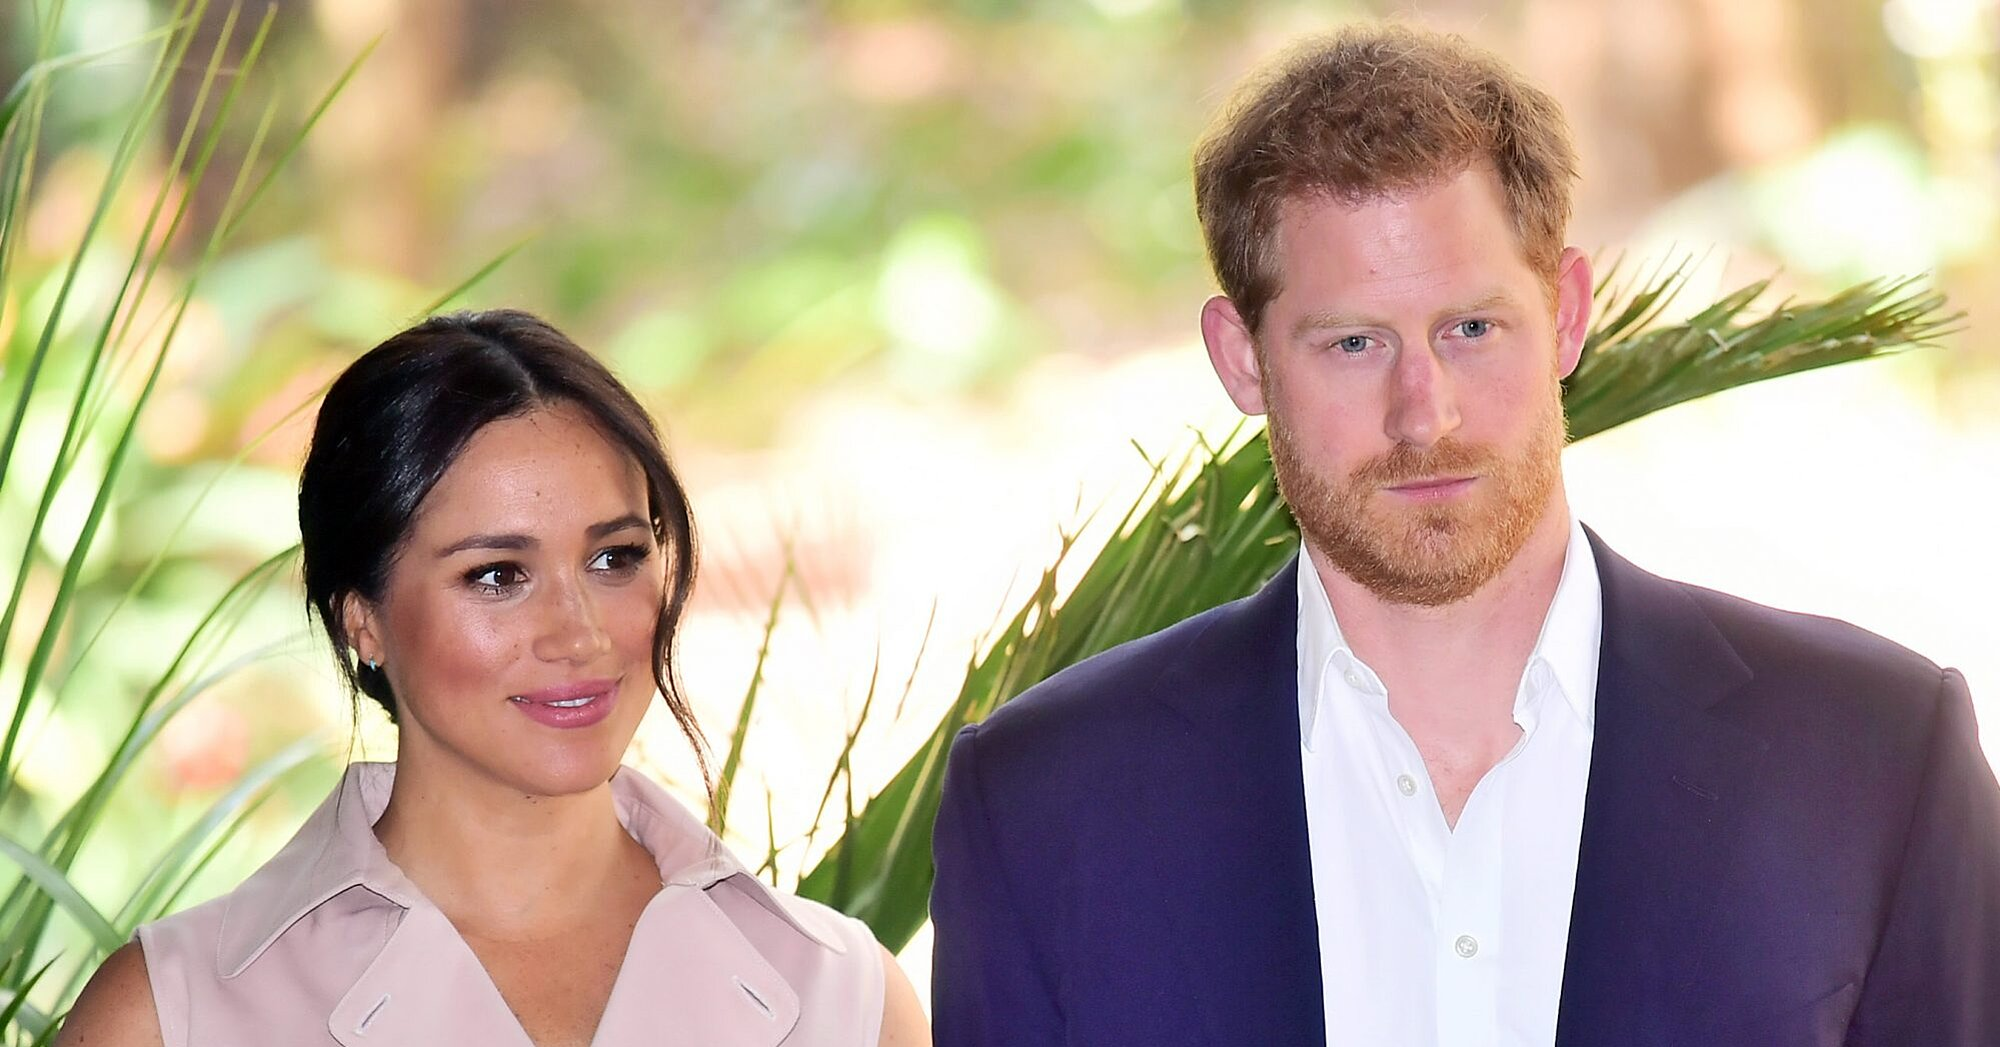 Prince Harry's Friend Tom Bradby Opens up About Harry's 'Heartbreak' and Royal Family Tensions